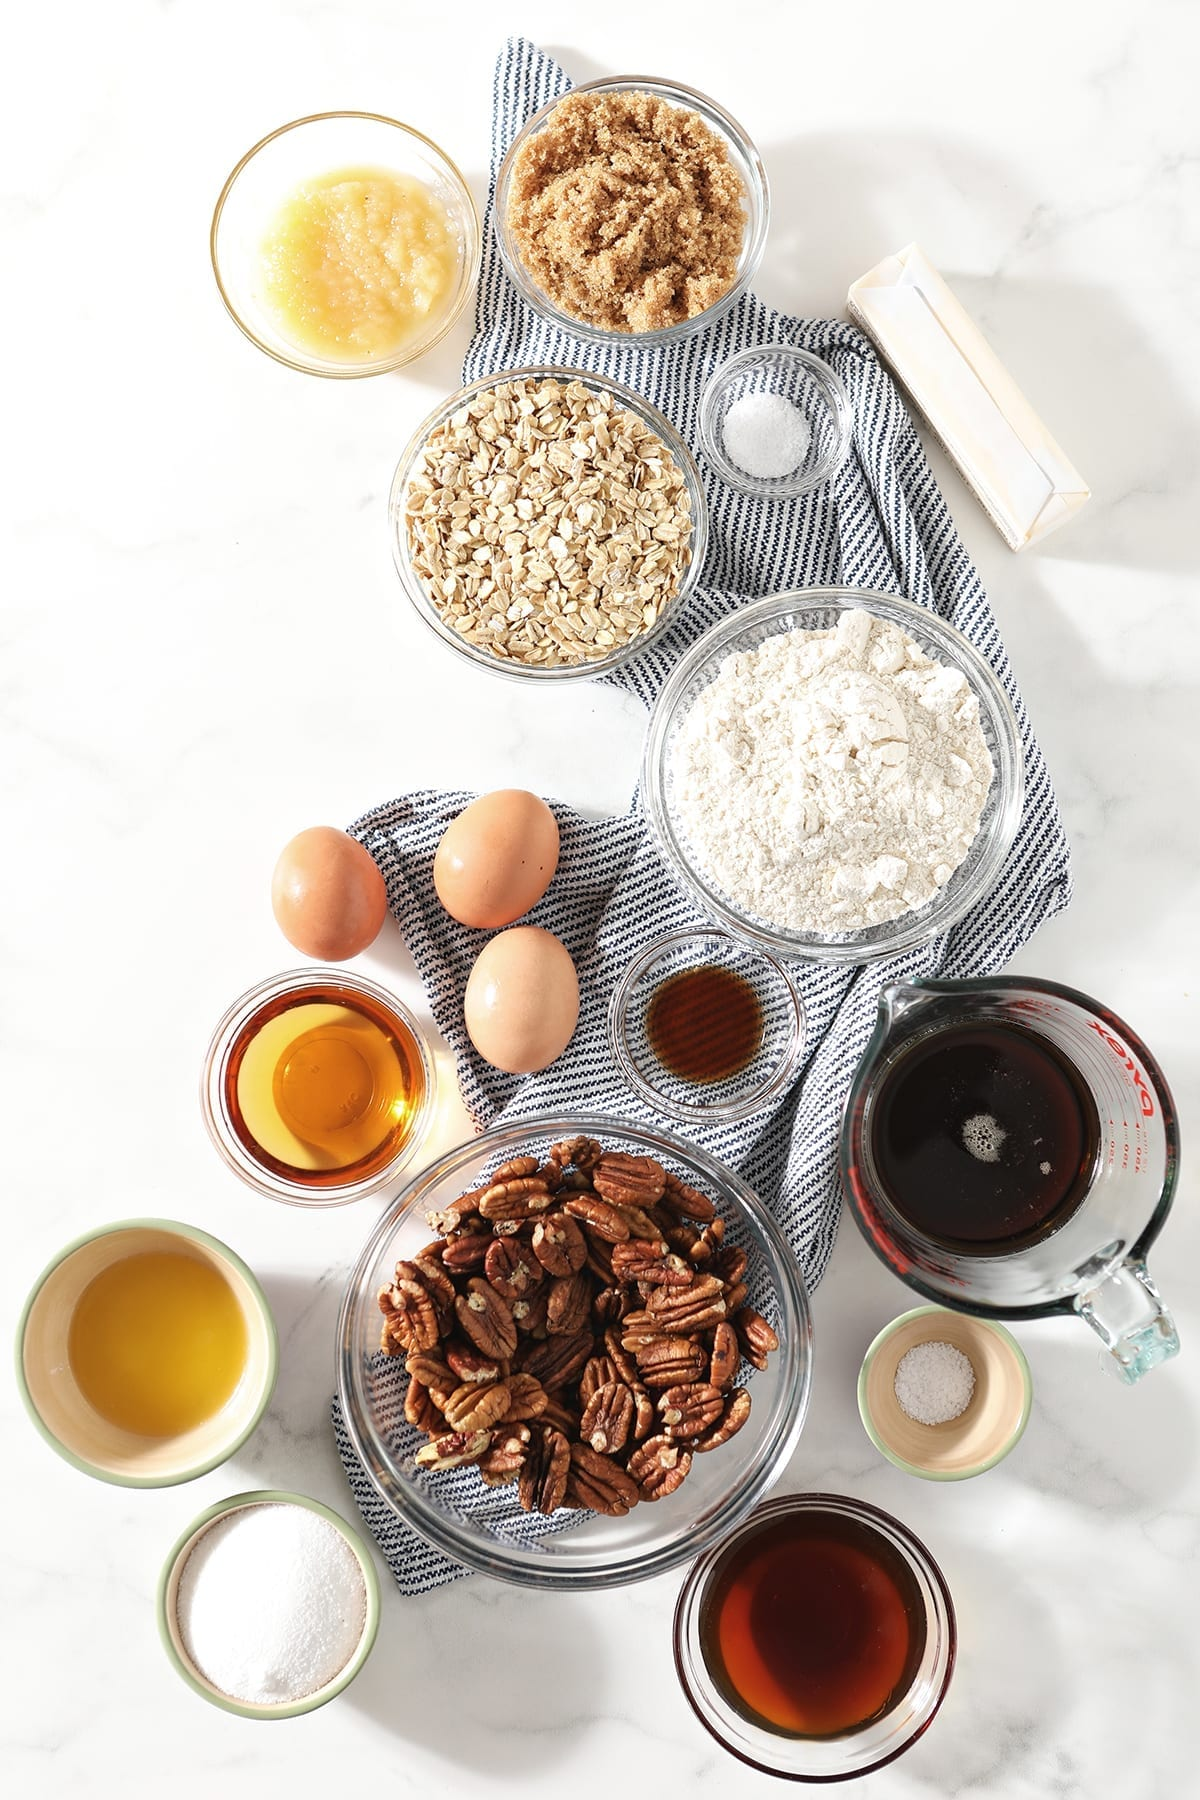 Ingredients to make Bourbon Pecan Pie Bars and their in bowls on top of a blue and white striped towel